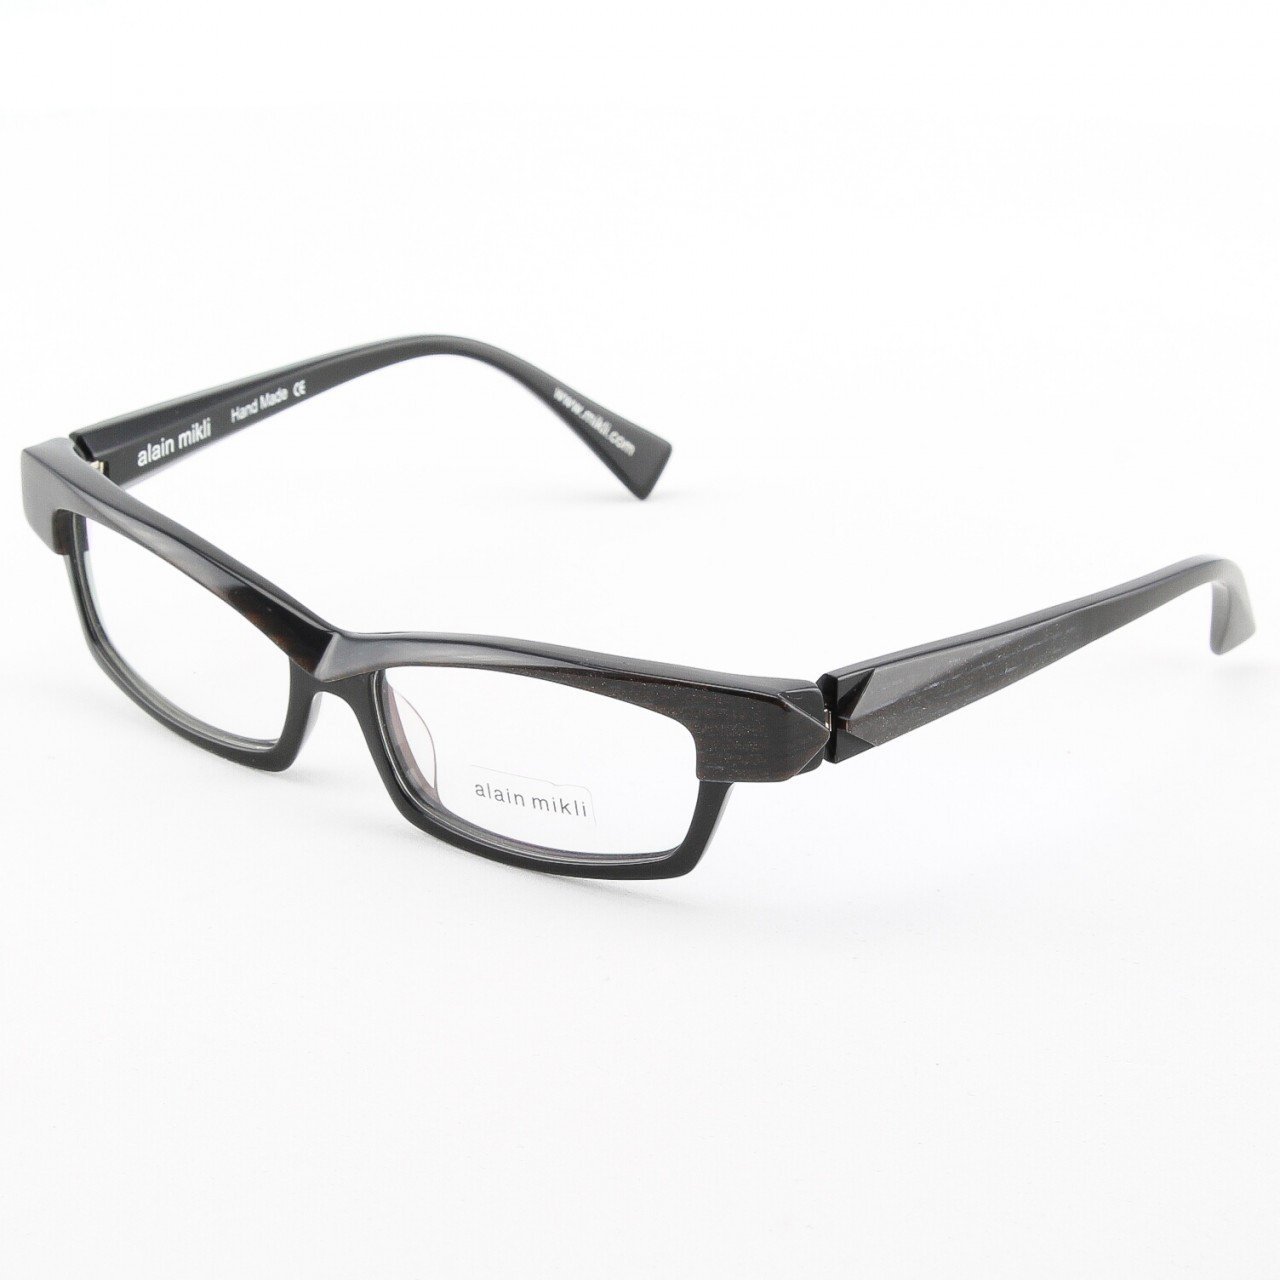 Alain Mikli Eyeglasses AL0932 Col. 1 Black Iridescent Frame with Temple Accent